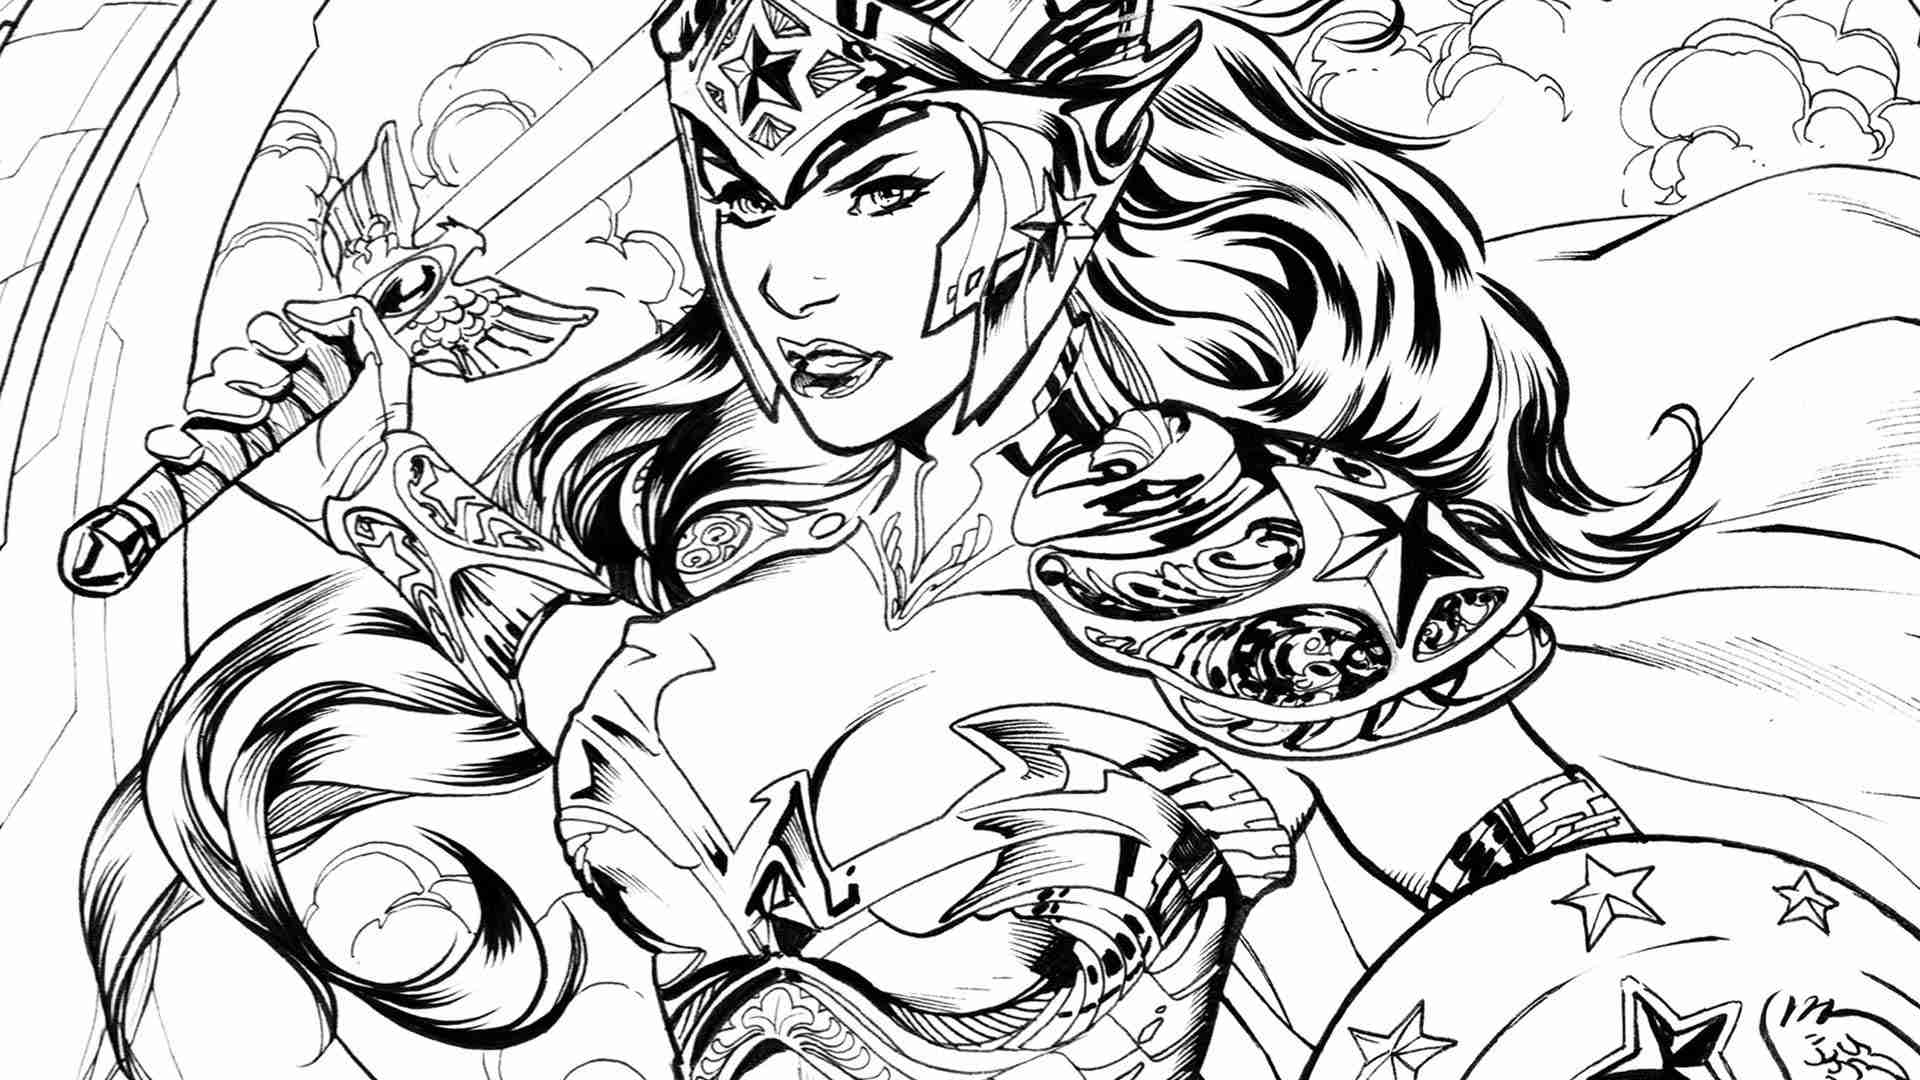 1920x1080 Realistic Wonder Woman Coloring Pages For Adults Coloringstar